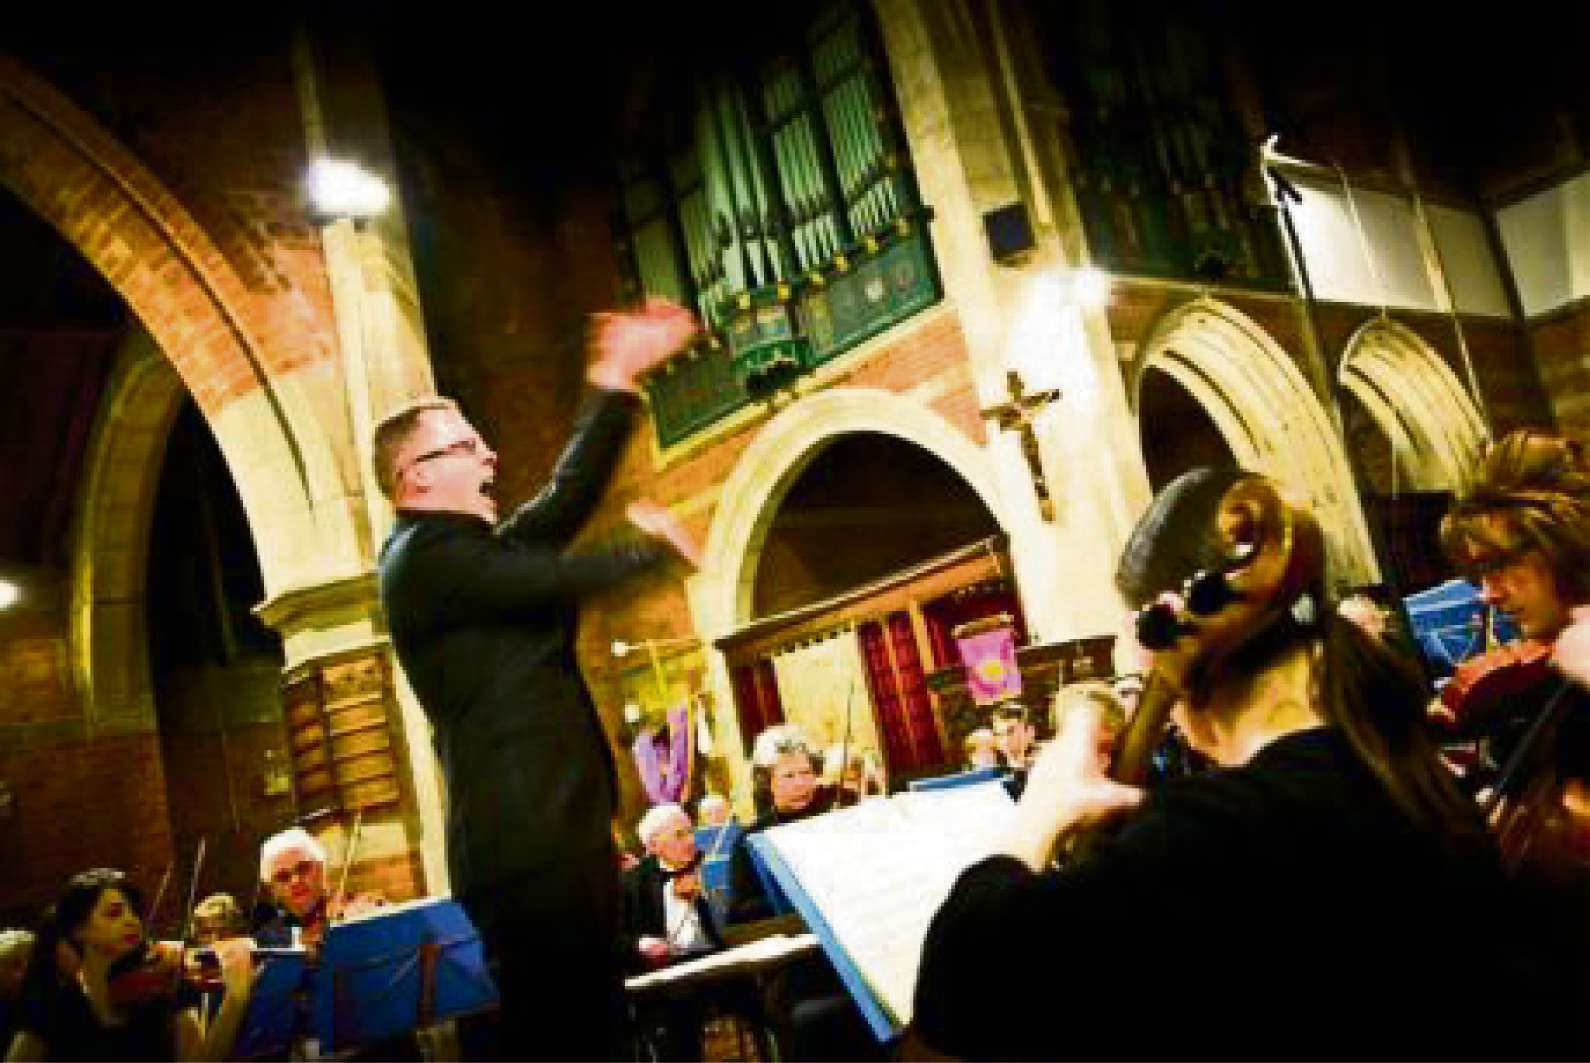 The orchestra's conductor Keith Slade in action.